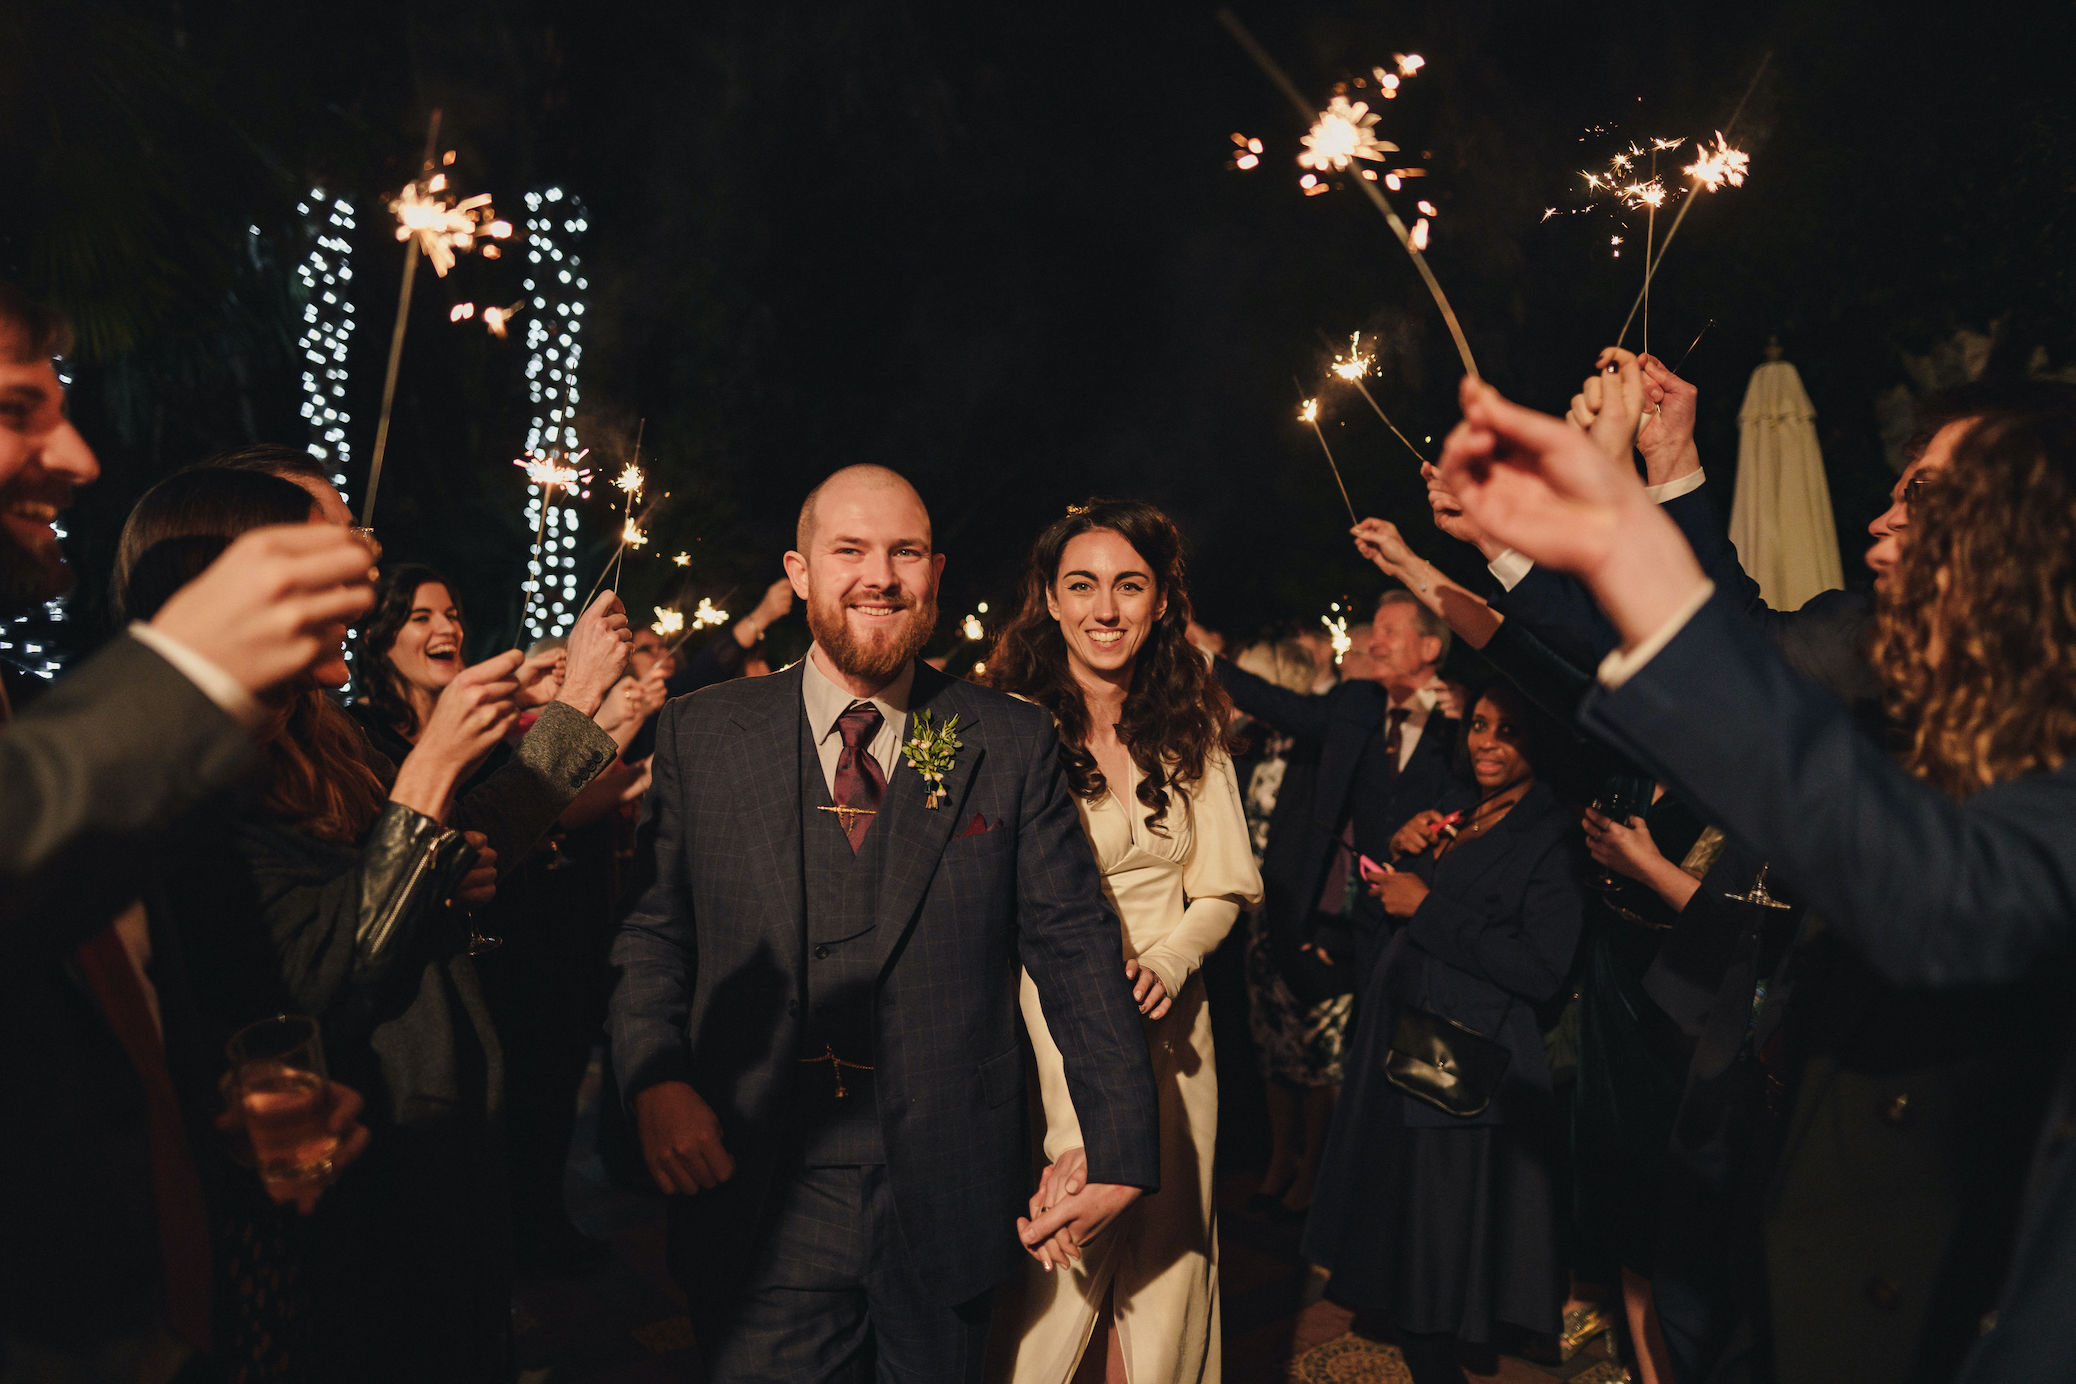 Bride and groom making their exit with sparklers